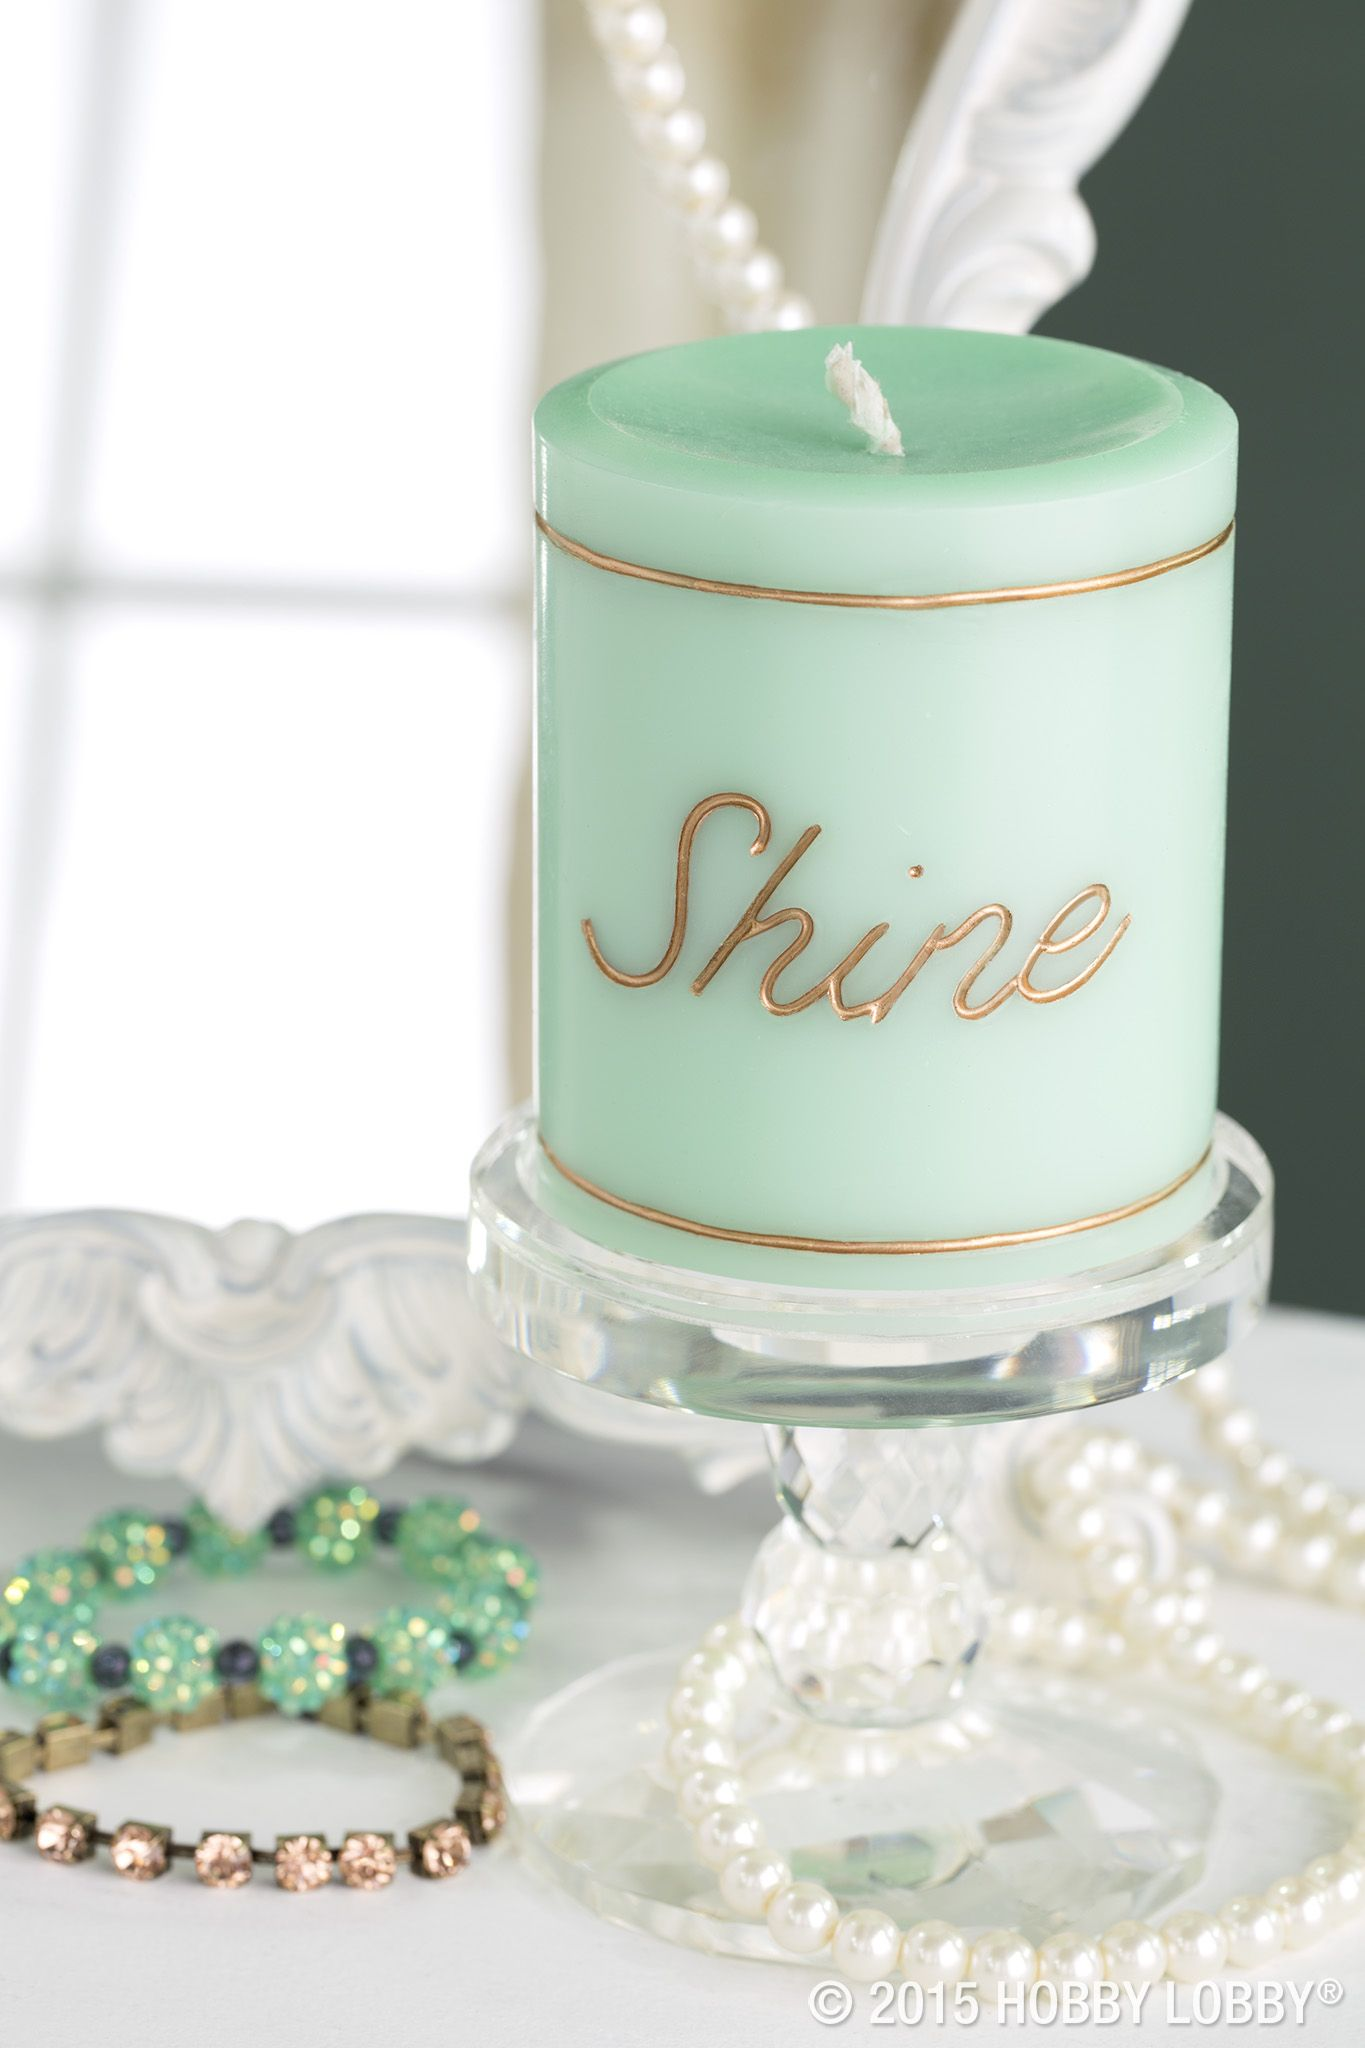 Want boutique-worthy pomp on a made-at-home pillar? Use a carving tool (Hobbies Department) to etch a word or pattern into the cooled wax. Then use a fine-tipped brush to apply metallic acrylic paint to the design.